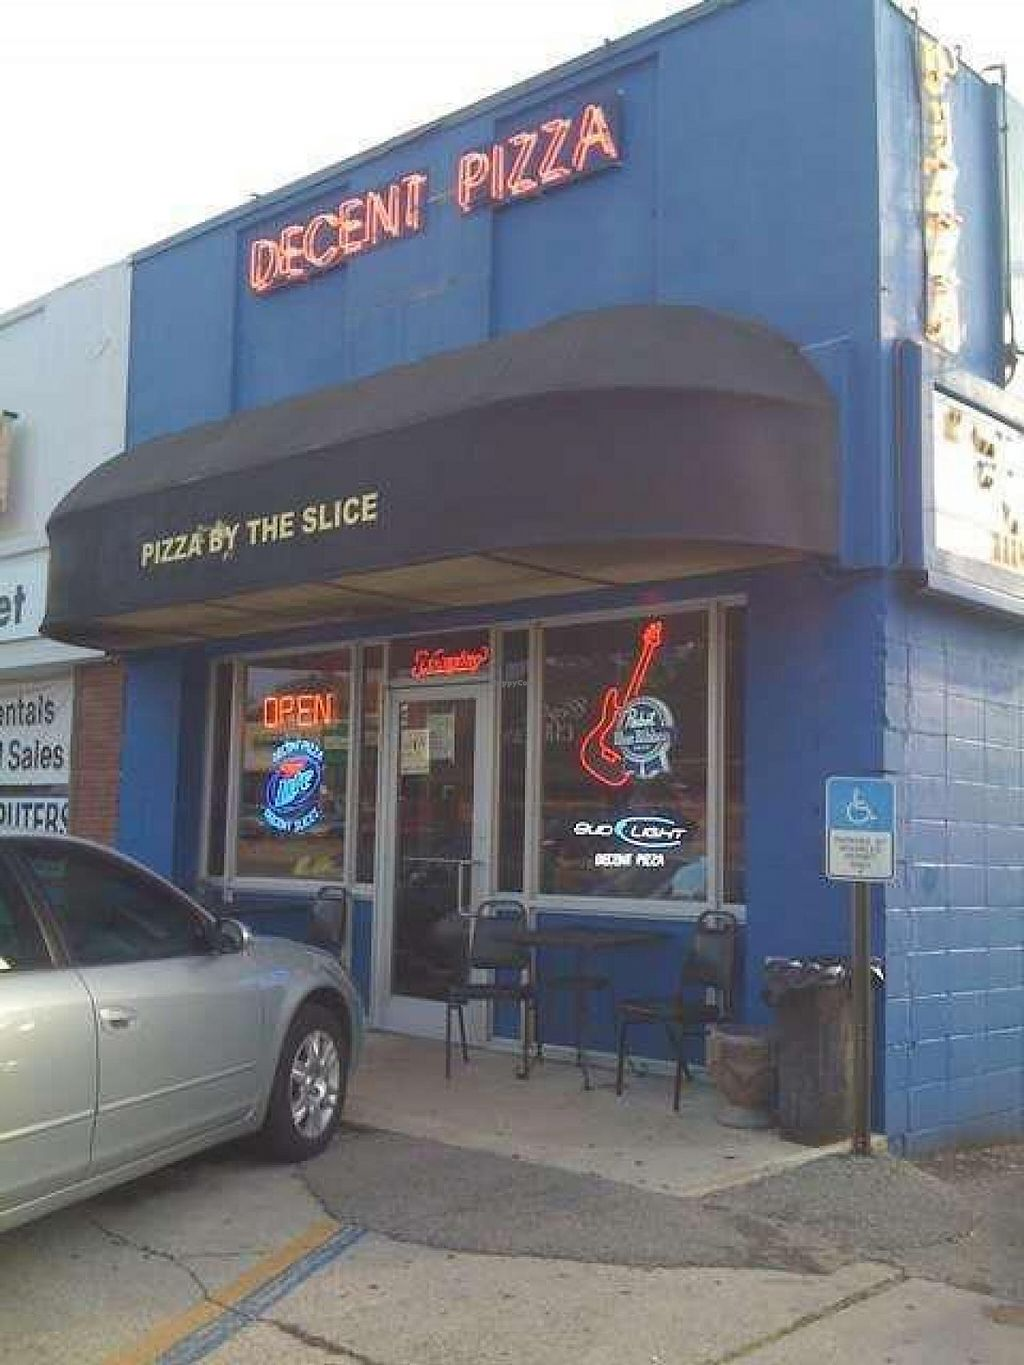 """Photo of Decent Pizza  by <a href=""""/members/profile/community"""">community</a> <br/>Decent Pizza <br/> April 25, 2015  - <a href='/contact/abuse/image/57790/100263'>Report</a>"""